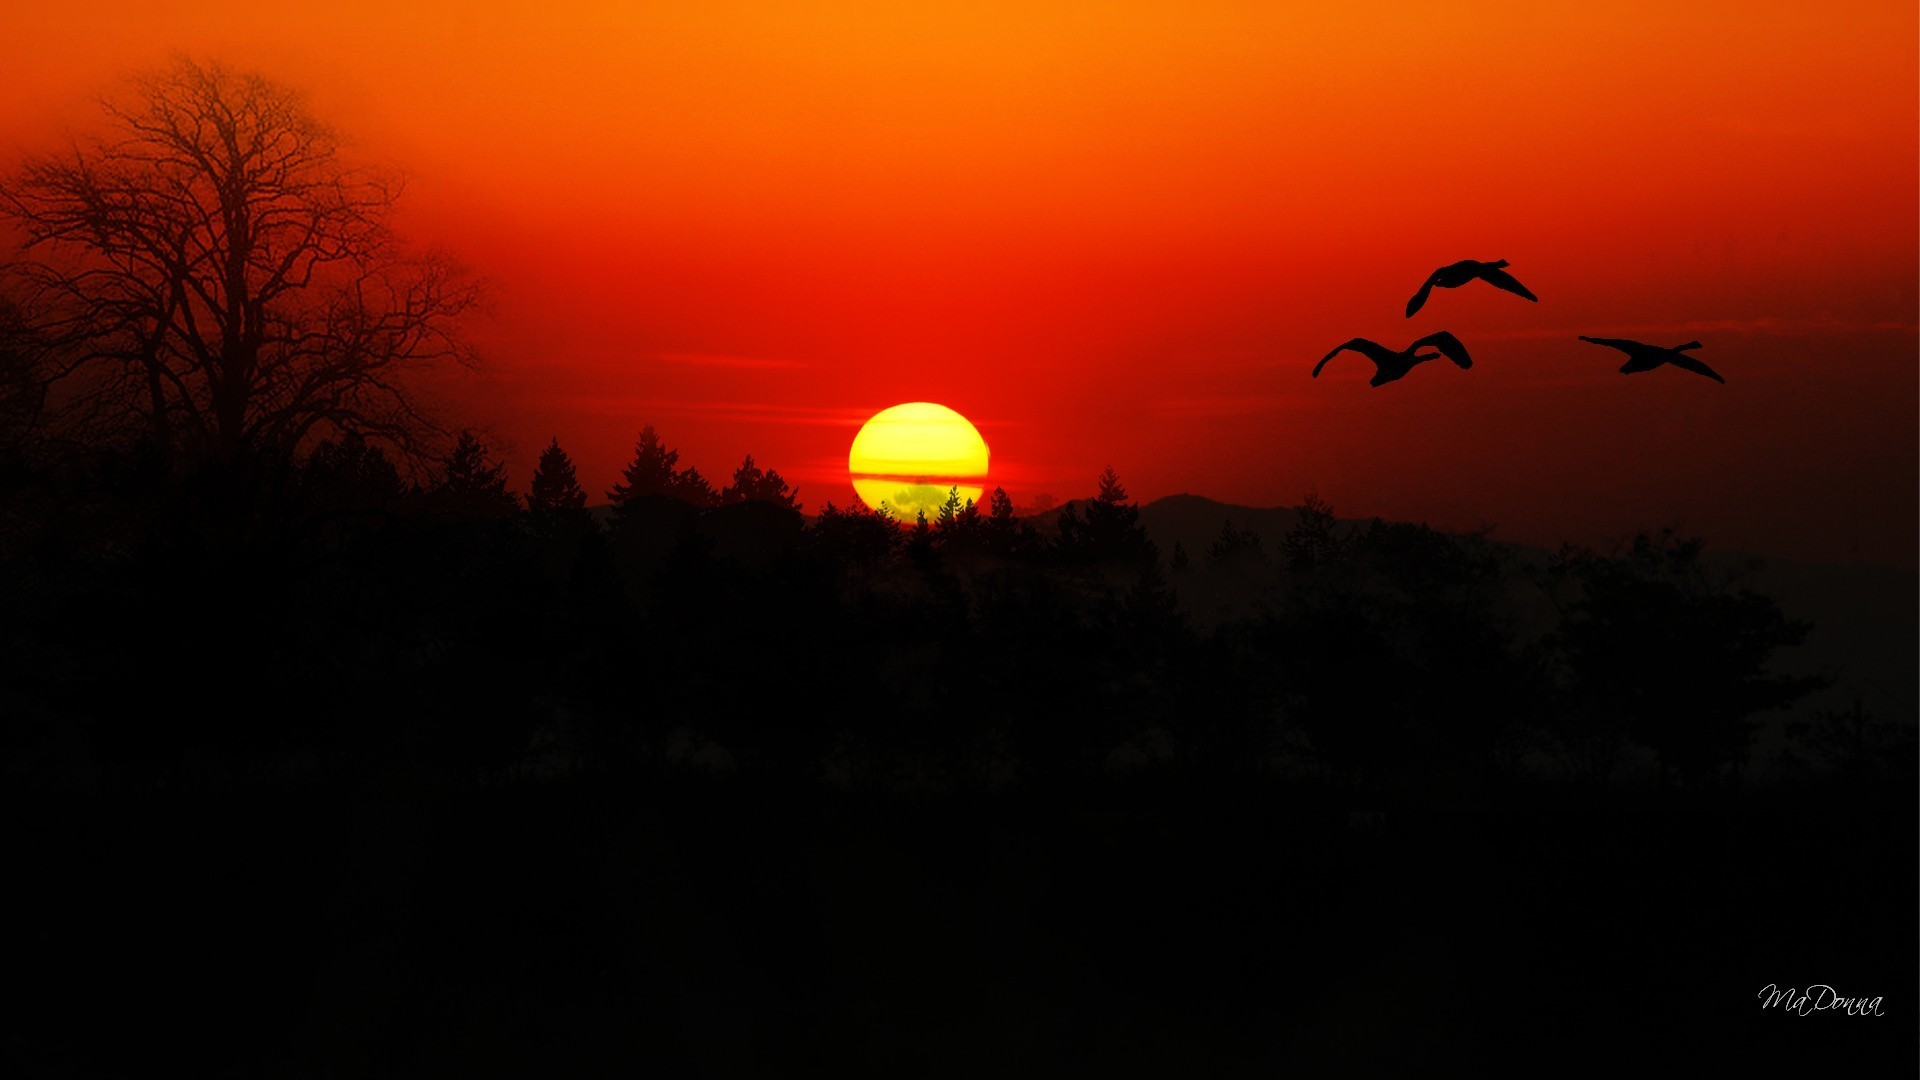 1920x1080 Evening Red Sun Mountains Flight Birds Bright Forest Geese Trees Sky Sunset Orange  Wallpaper Ipad